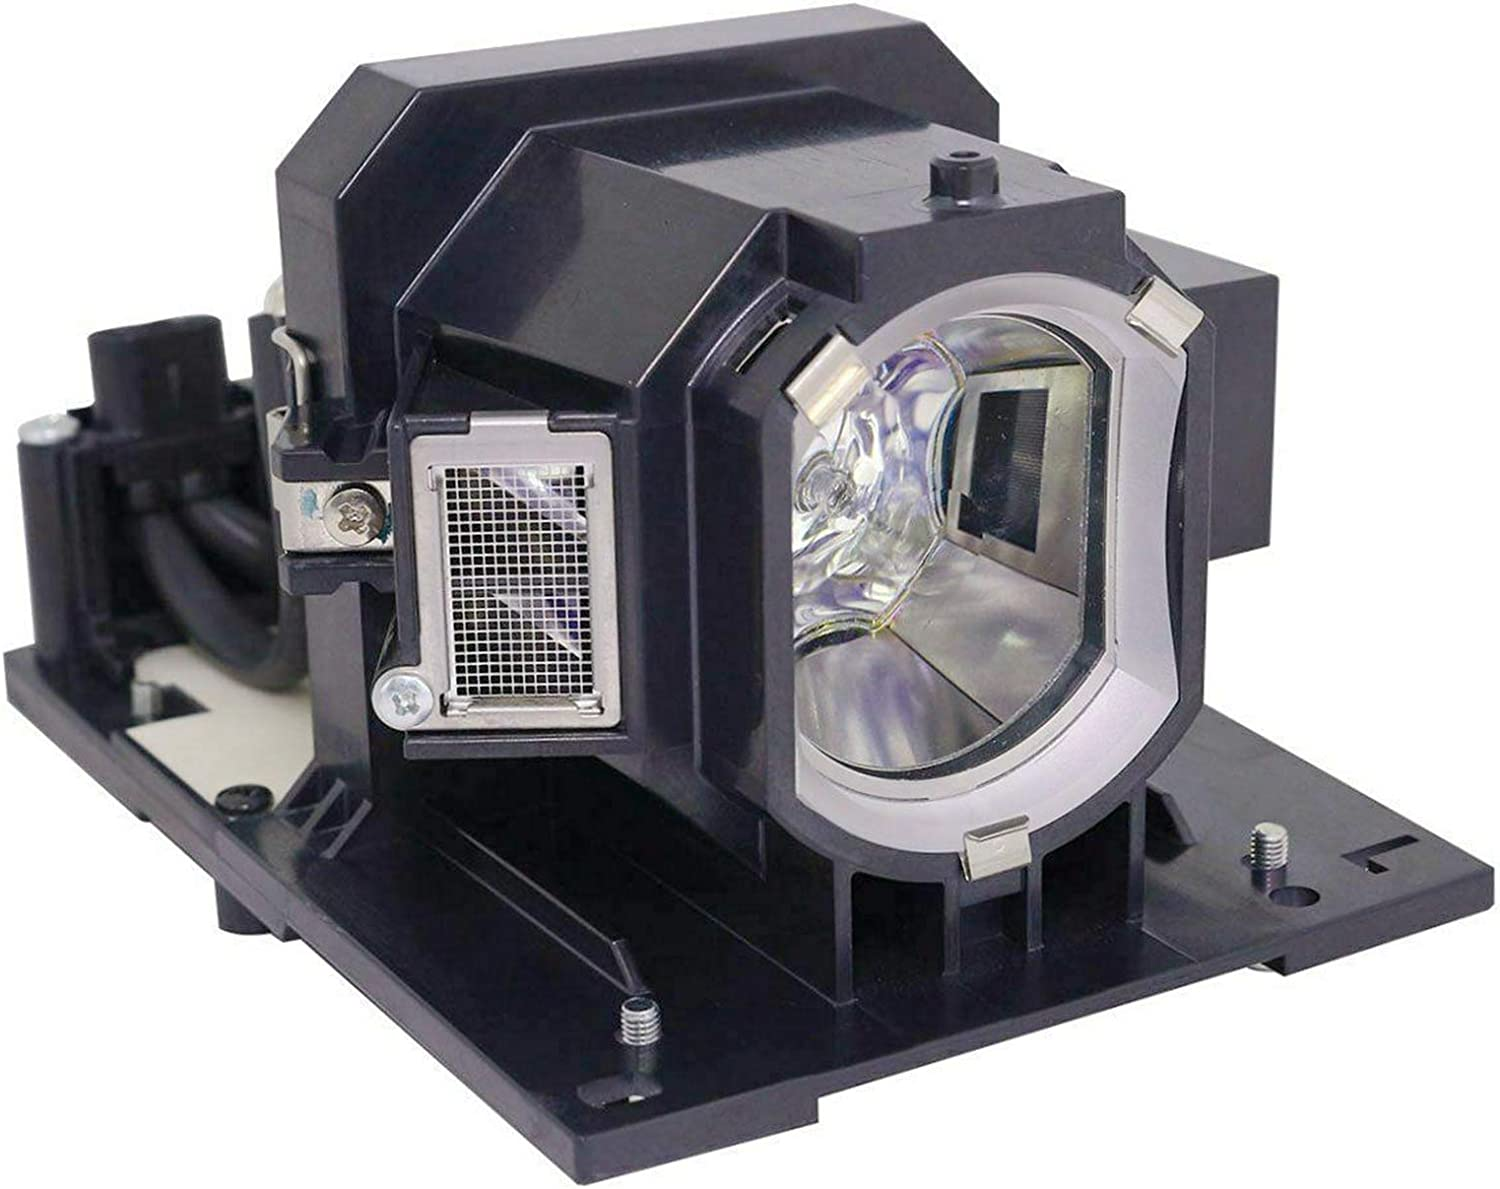 Rembam DT01931 Projector Replacement Compatible Lamp with Housing for Hitachi CP-X5550 CP-X5555 CP-WX5500 CP-WX5505 CP-WU5500 CP-WU5505